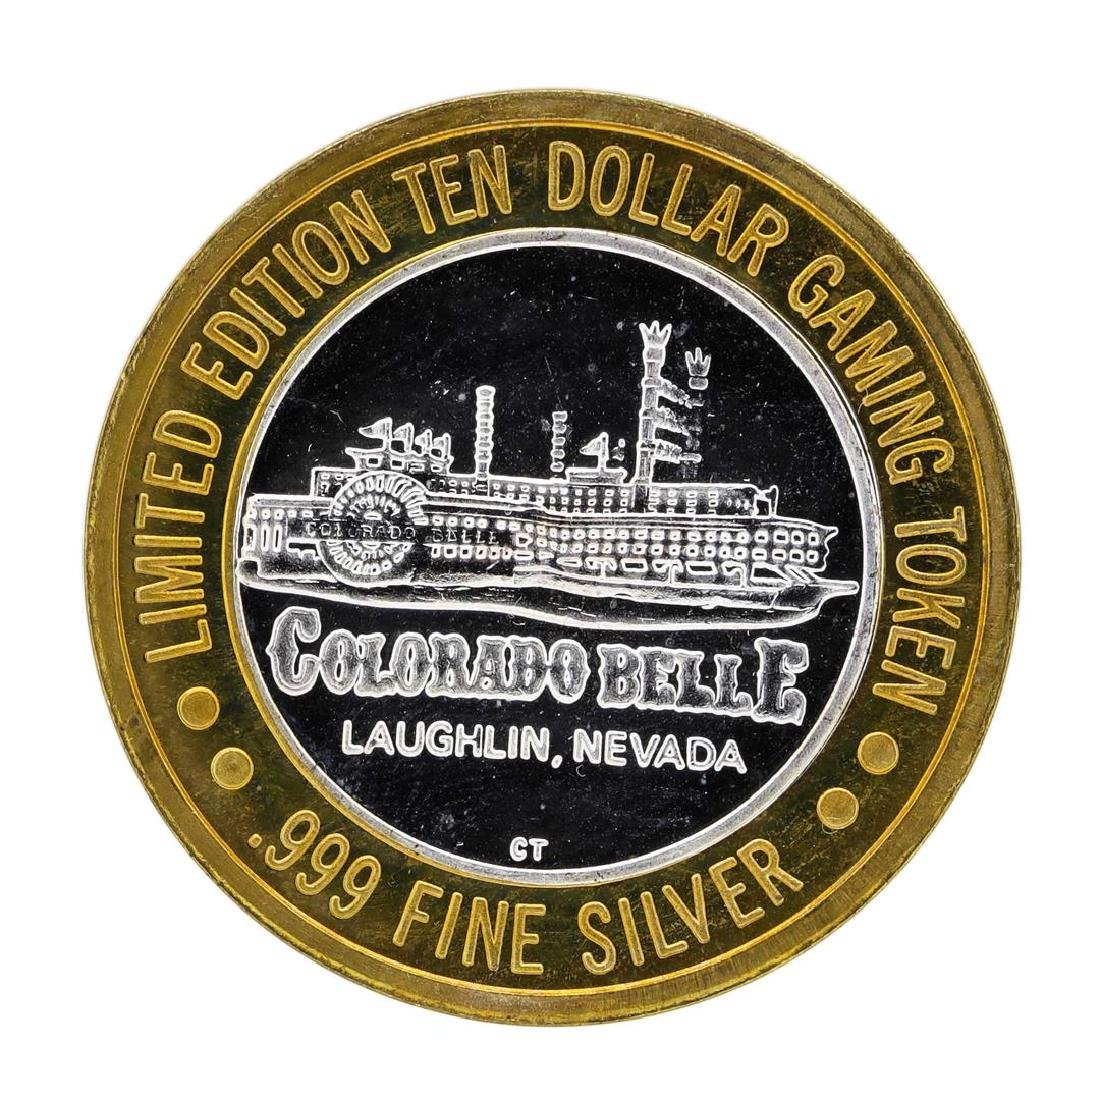 .999 Silver Colorado Belle Laughlin, Nevada $10 Casino